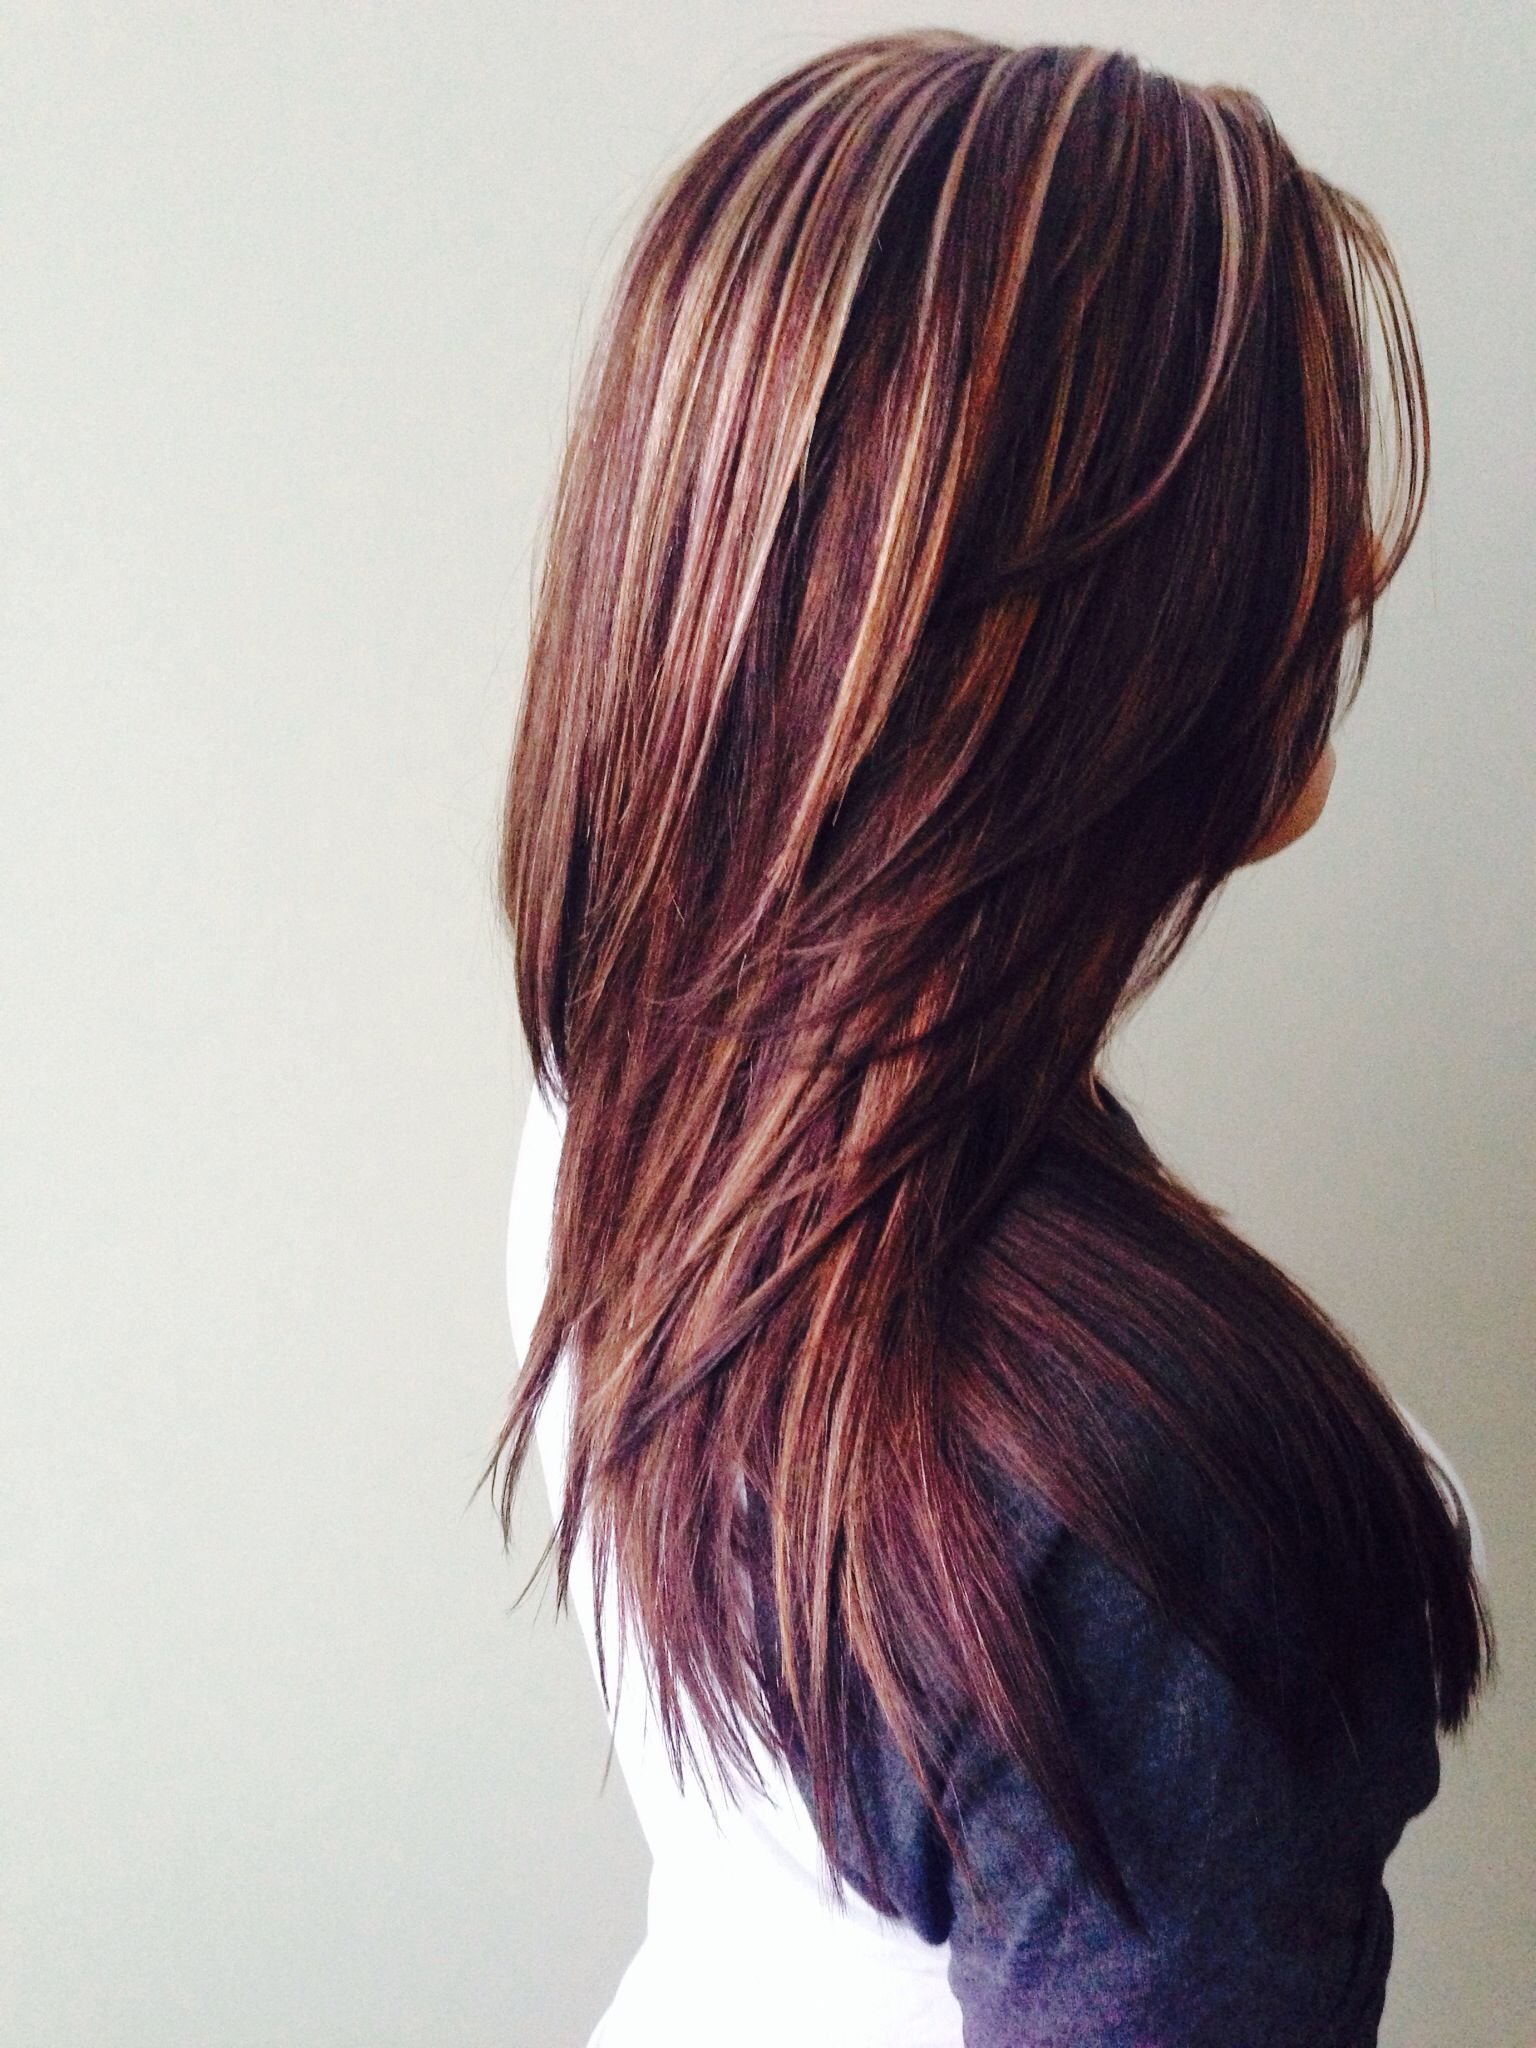 Pin By Emma Panula On My Hair Clients Maroon Hair Burgundy Hair Hair Color Burgundy